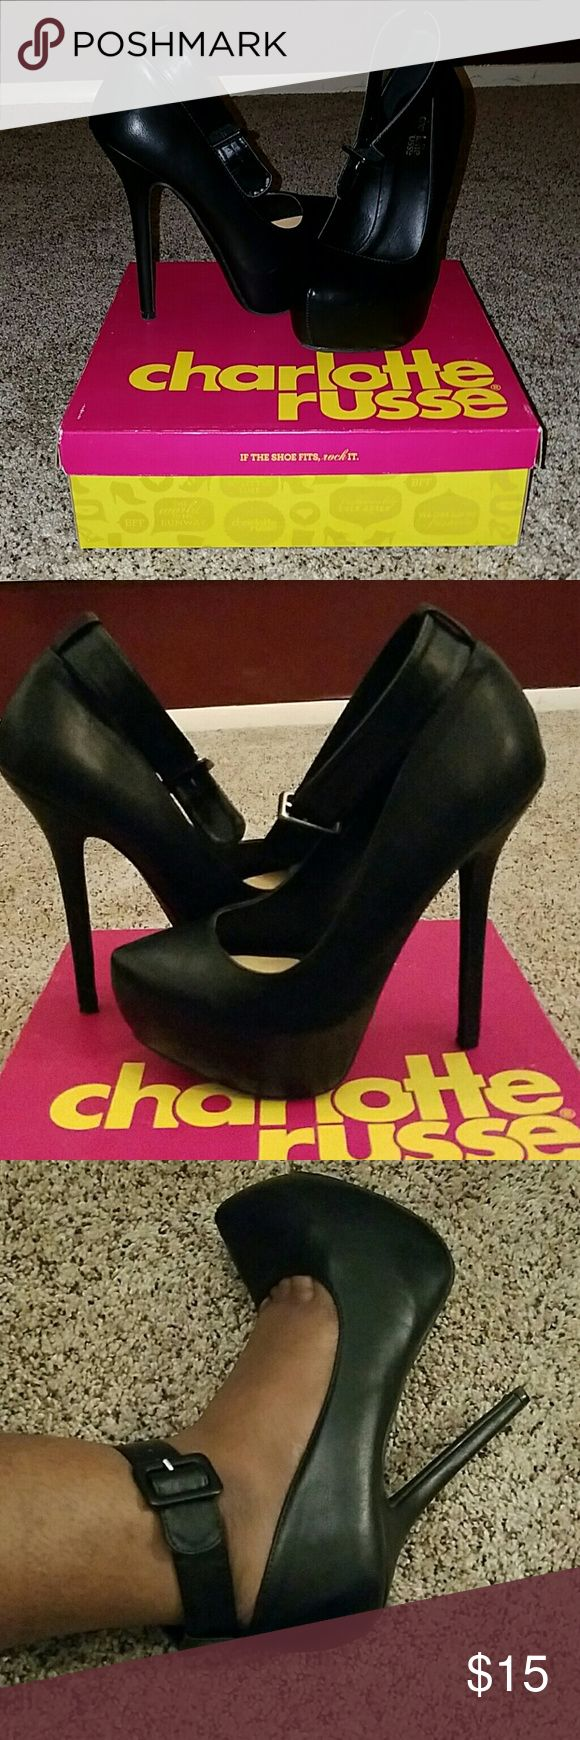 Black Charlotte Russe Heels Slightly worn, a couple scuffs (but very hard to see), pad in them for more comfort on the ball of your feet. Charlotte Russe Shoes Heels